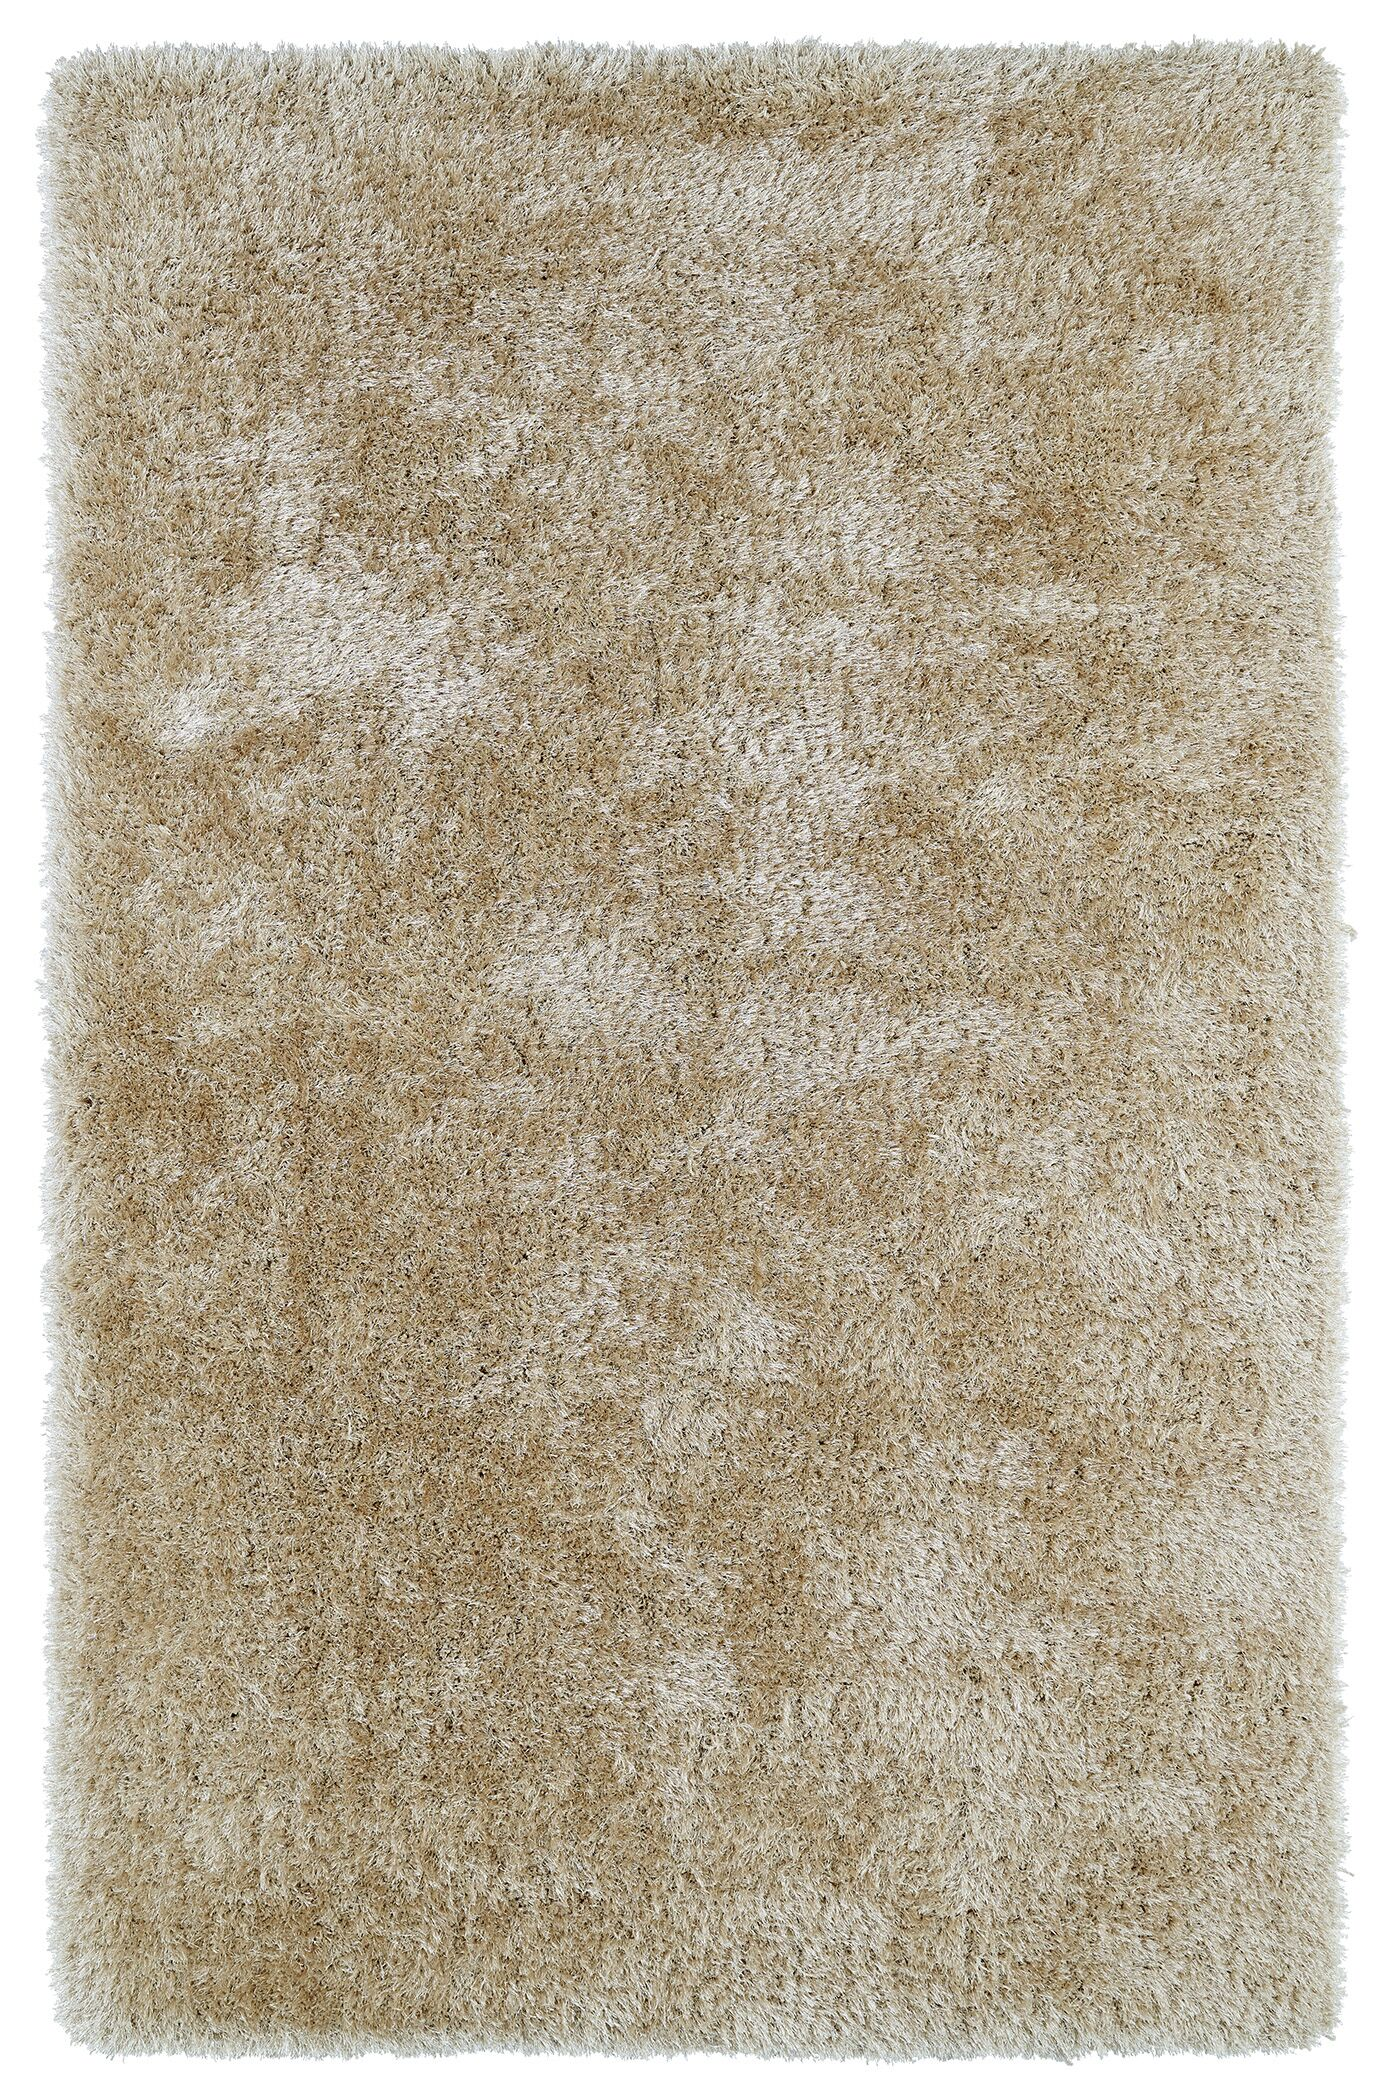 Caine Beige Area Rug Rug Size: Rectangle 3' x 5'